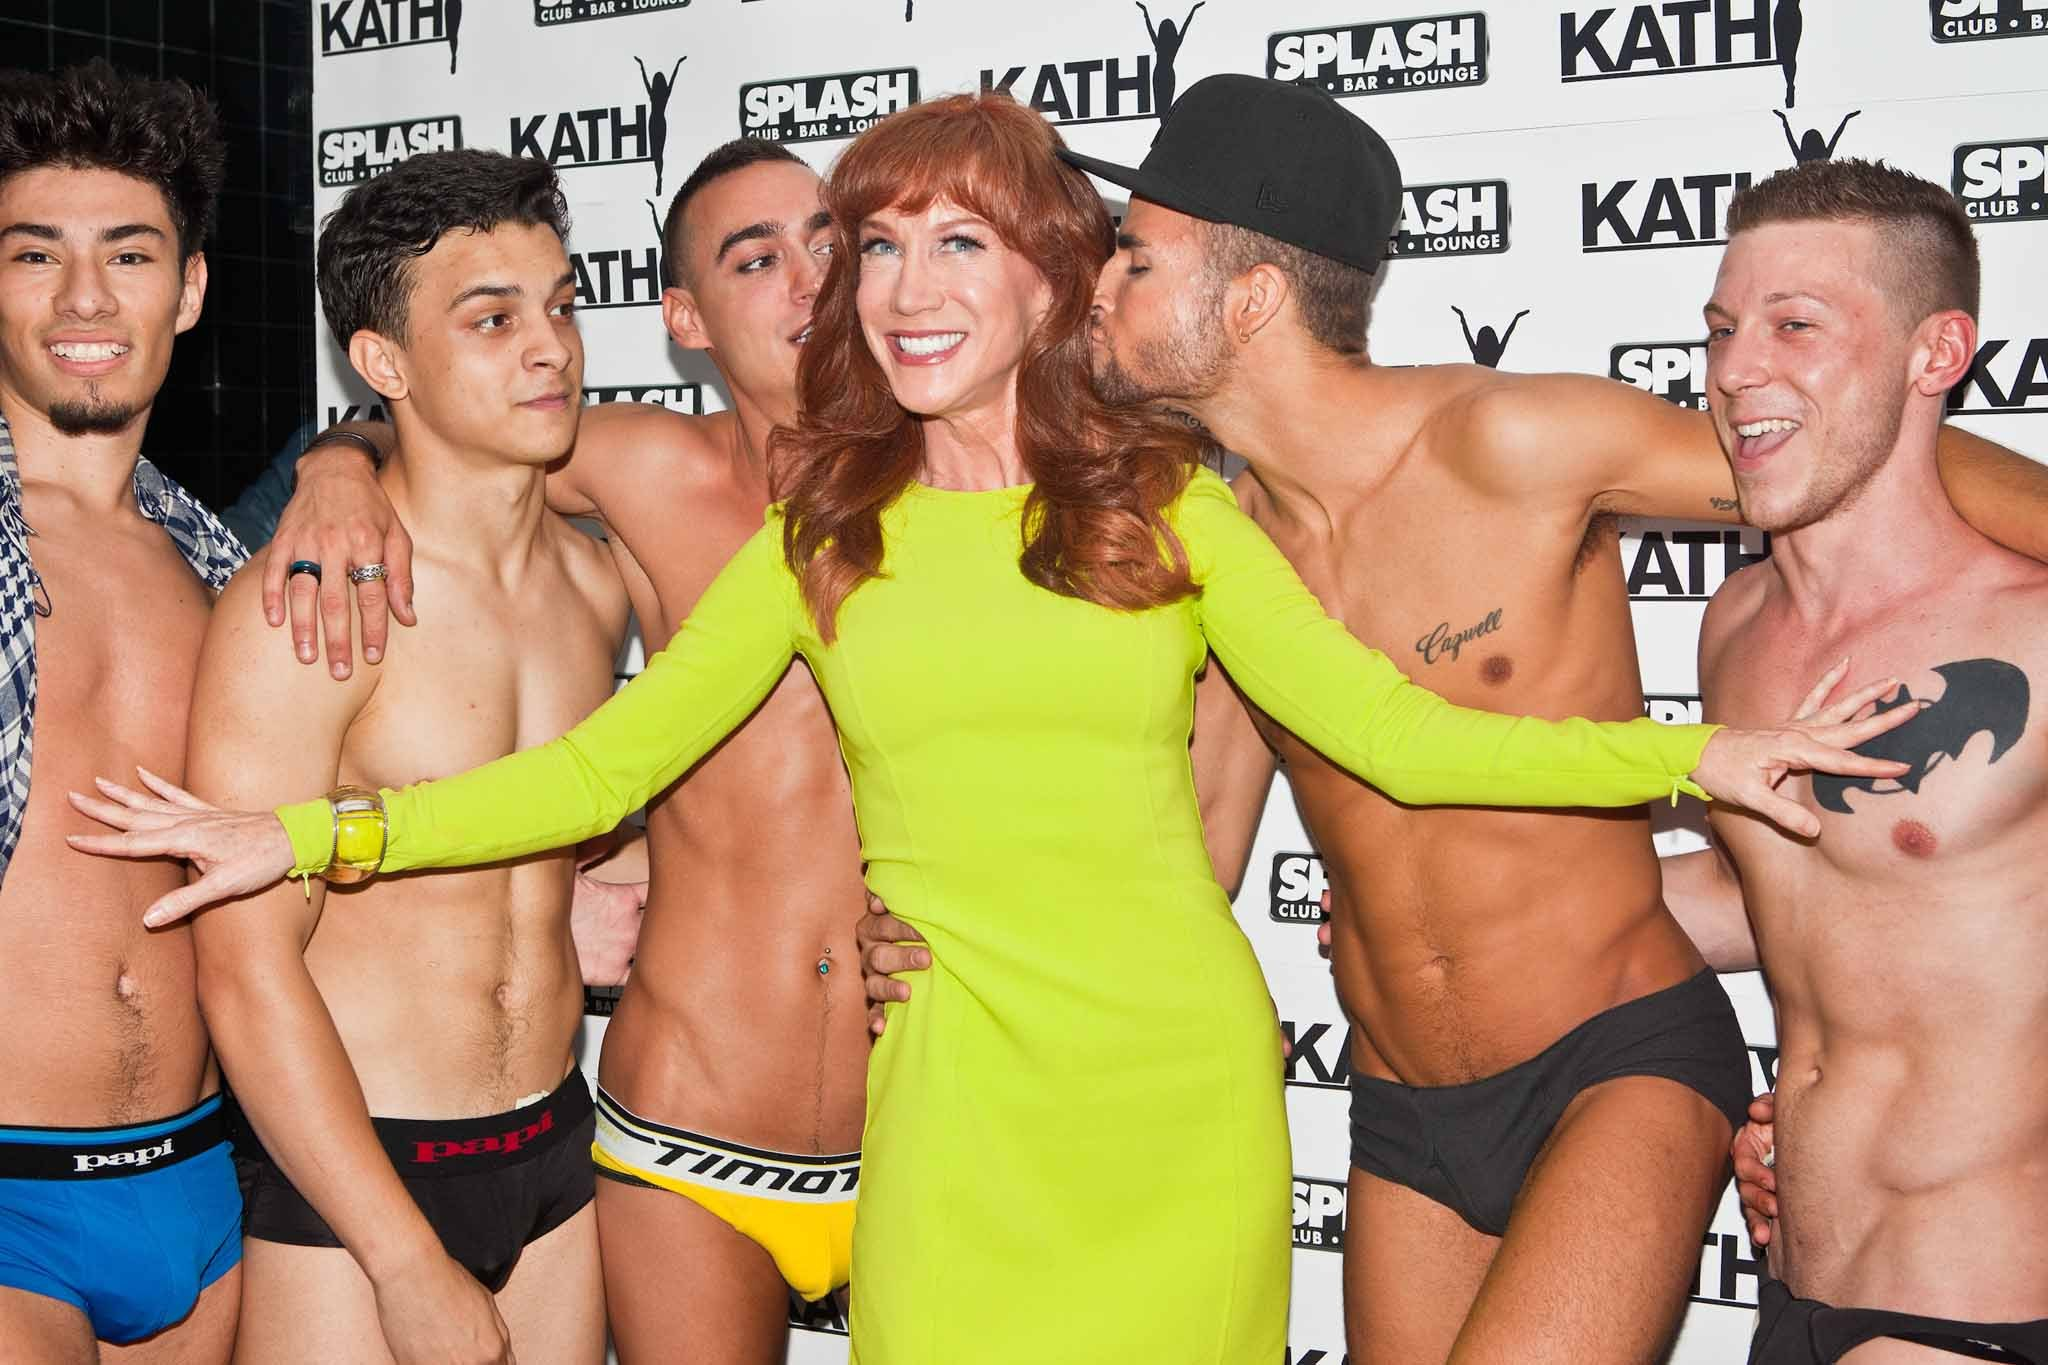 Kathy Griffin at Splash